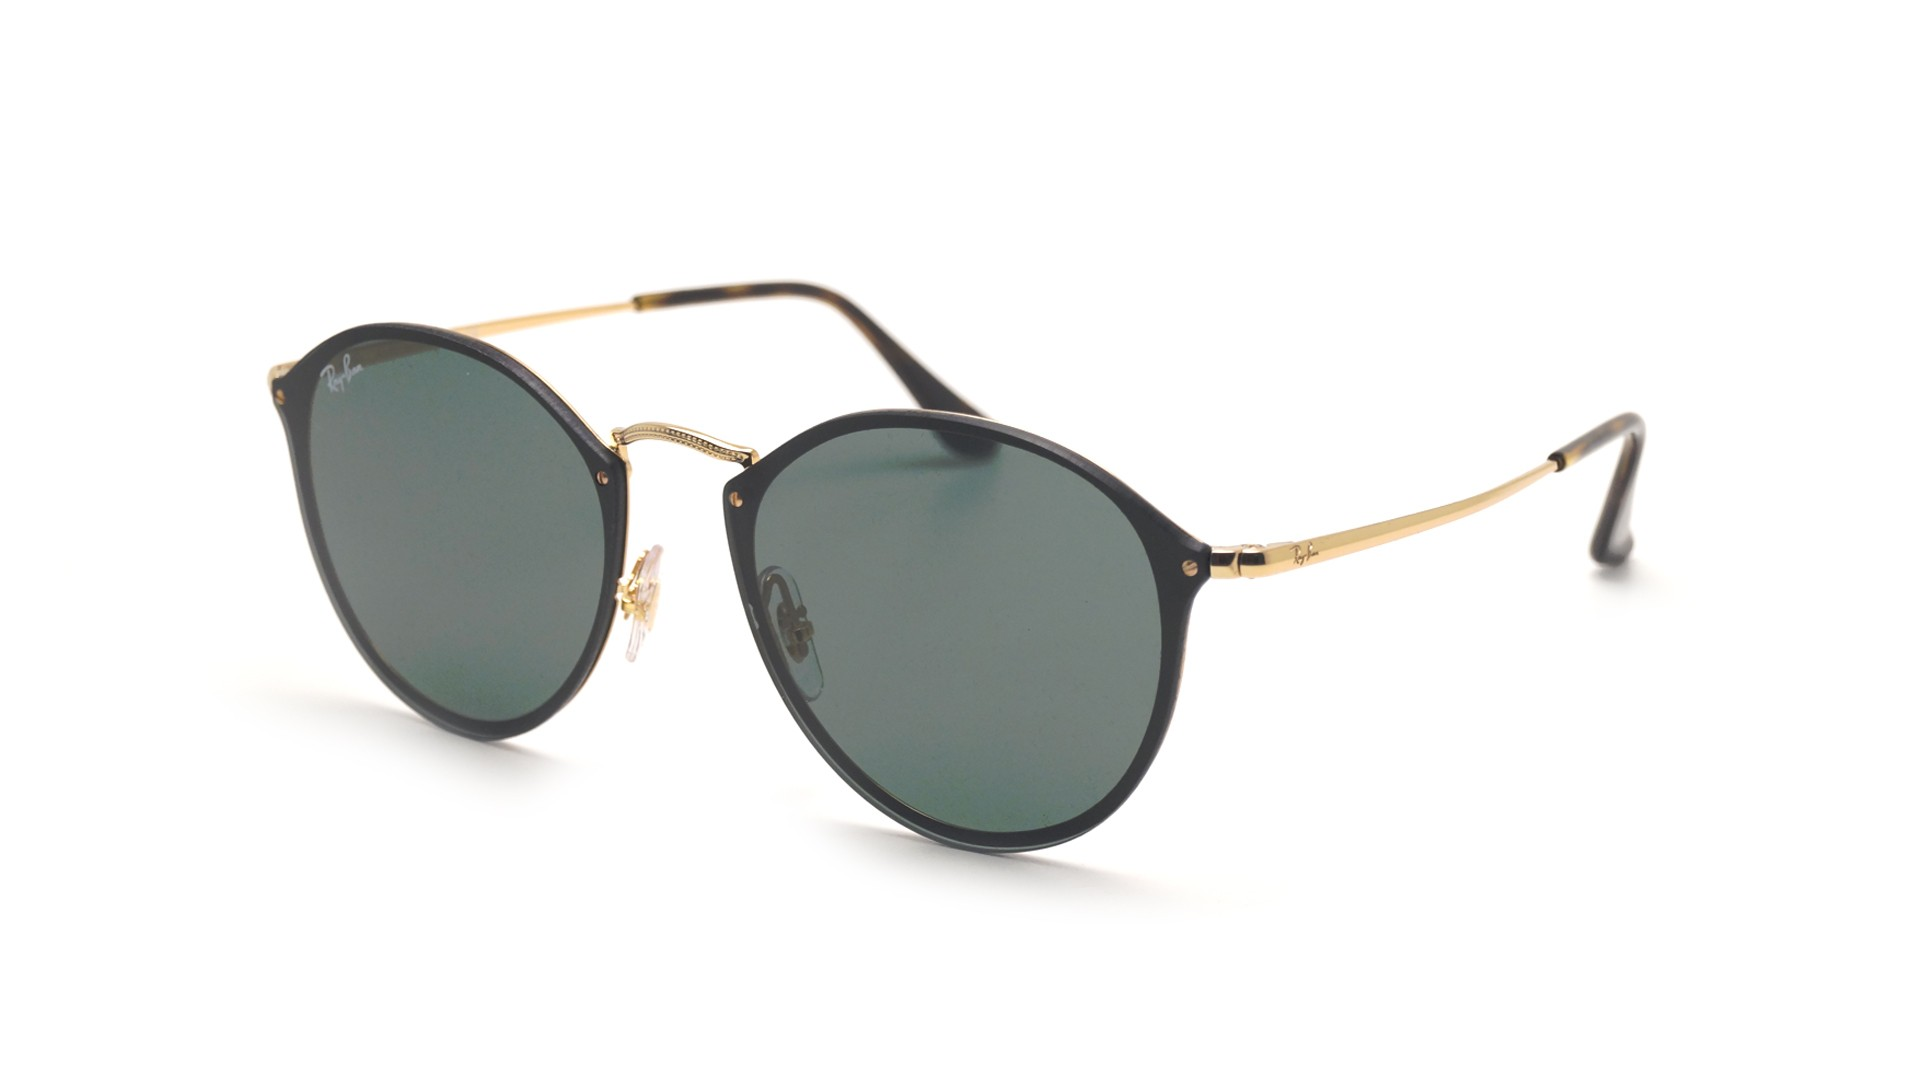 Sunglasses Ray-Ban Round Blaze Gold RB3574N 001 71 59-14 Large 5e8effd970